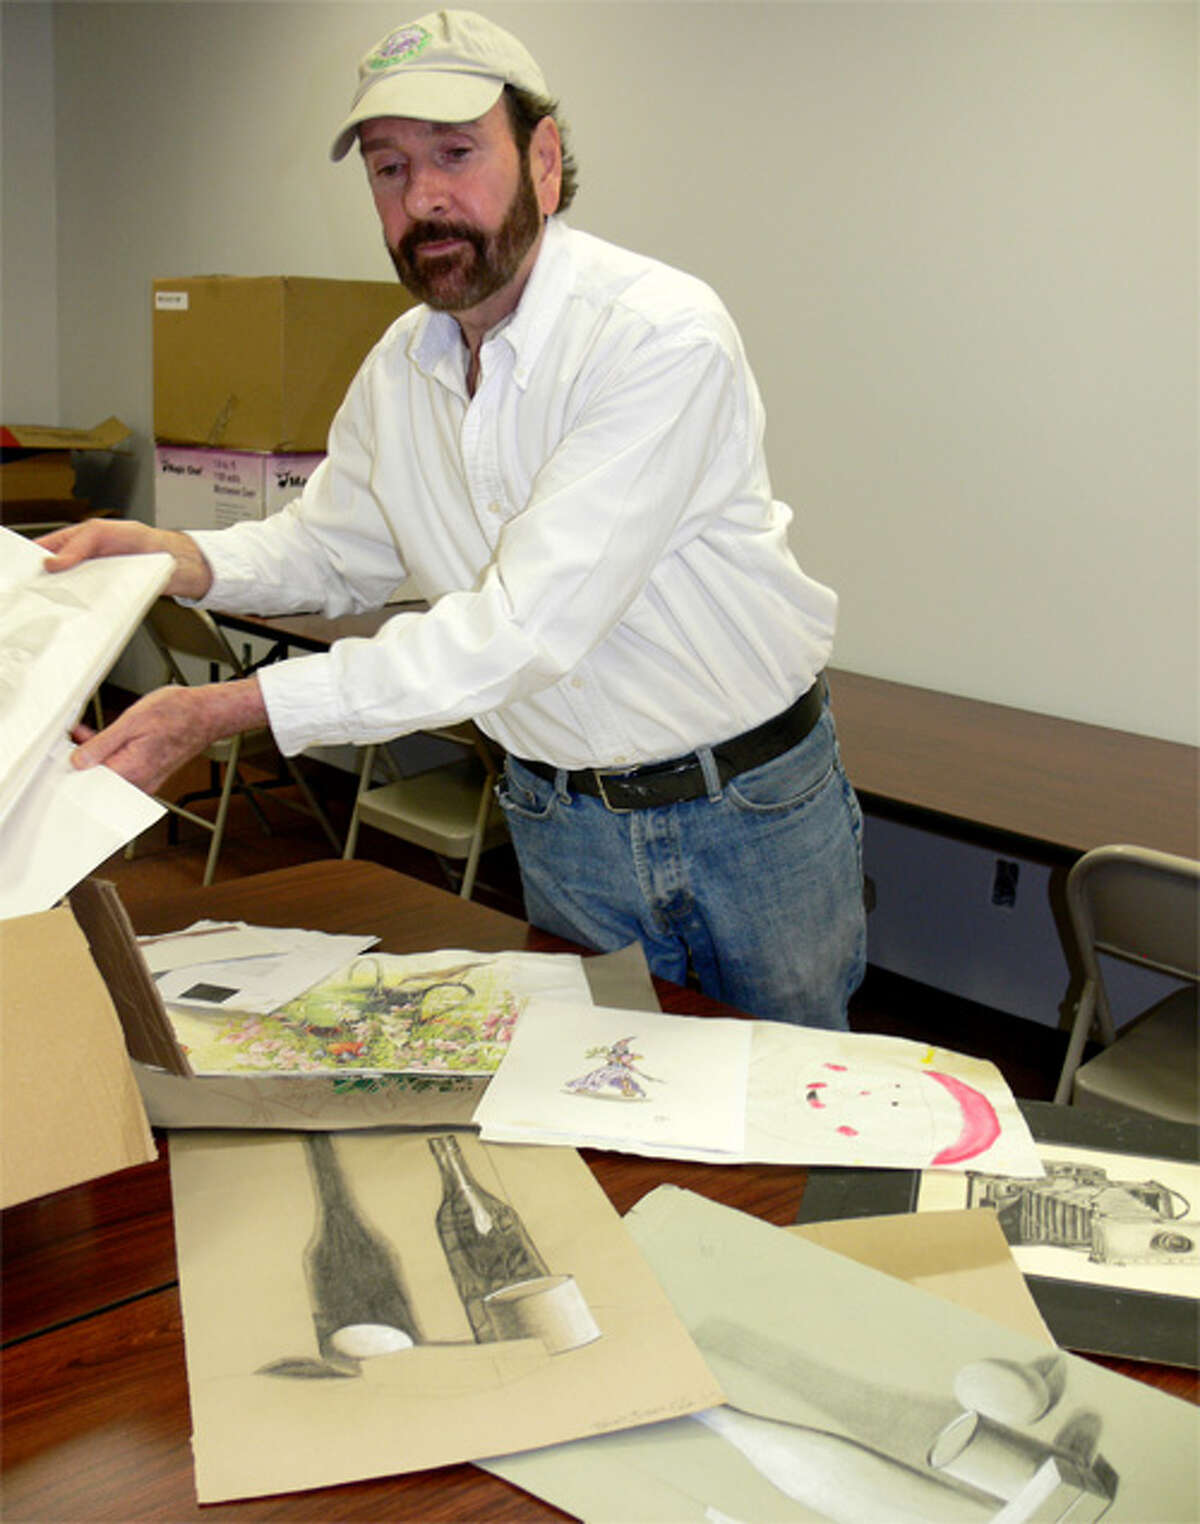 Bob Boroski looks through student artwork that was found in the remnants of the Jan. 6 fire that destroyed his downtown art school facility.